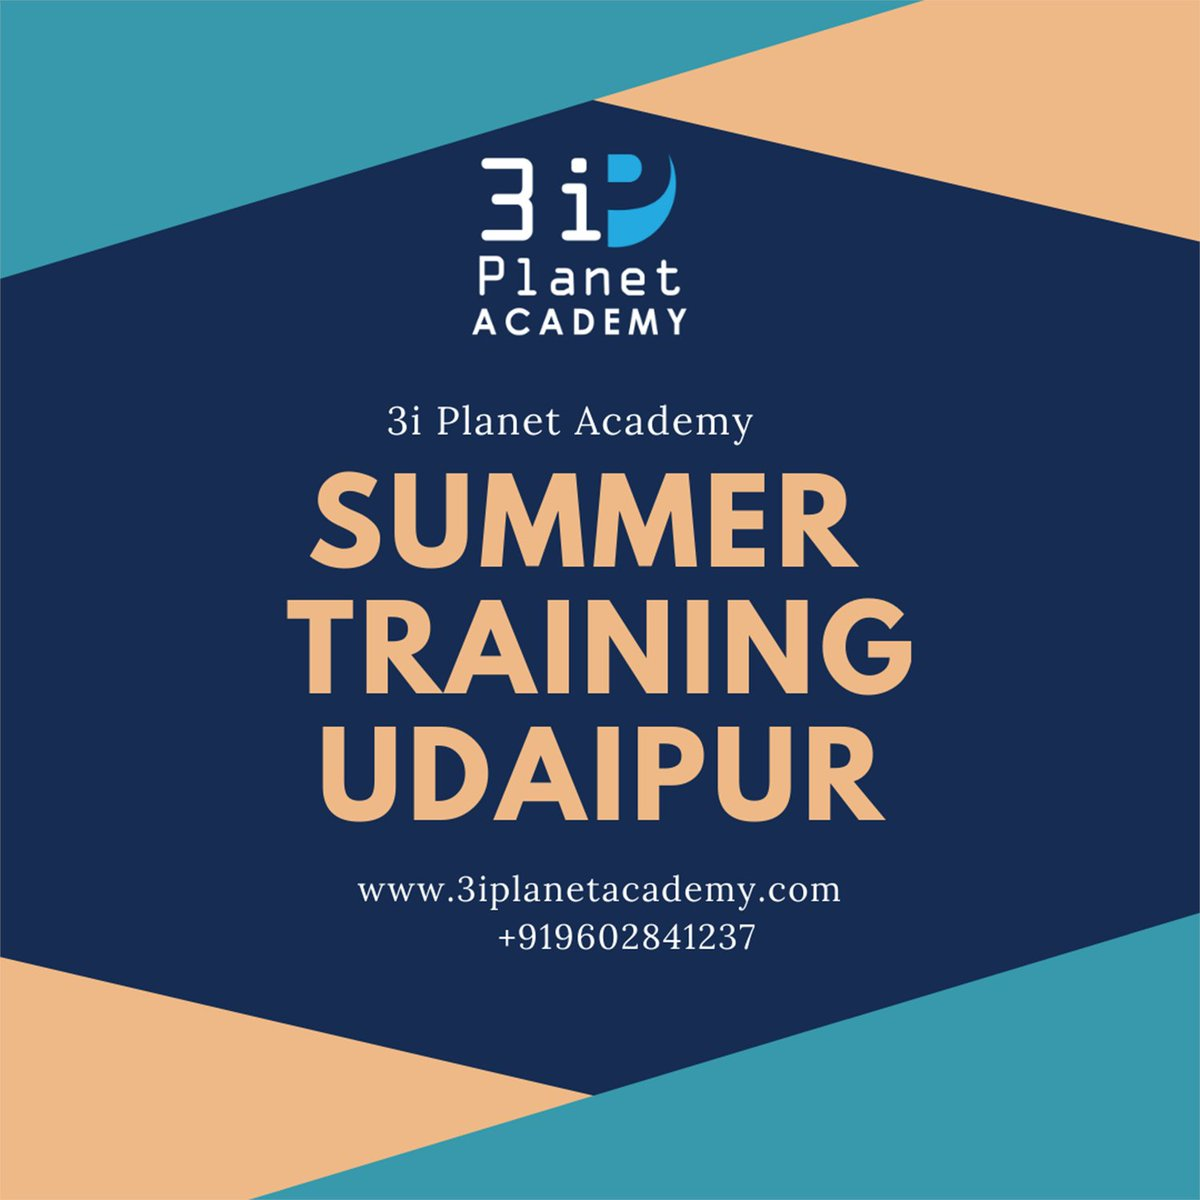 3i Planet Academy is best web design institute in udaipur. 3i planet academy is providing summer training in udaipur. Call & Whatsapp 9602841237 for more information about summer training in udaipur. #3iPlanetAcademy #SummerTraining <br>http://pic.twitter.com/U9pOC8t8wP